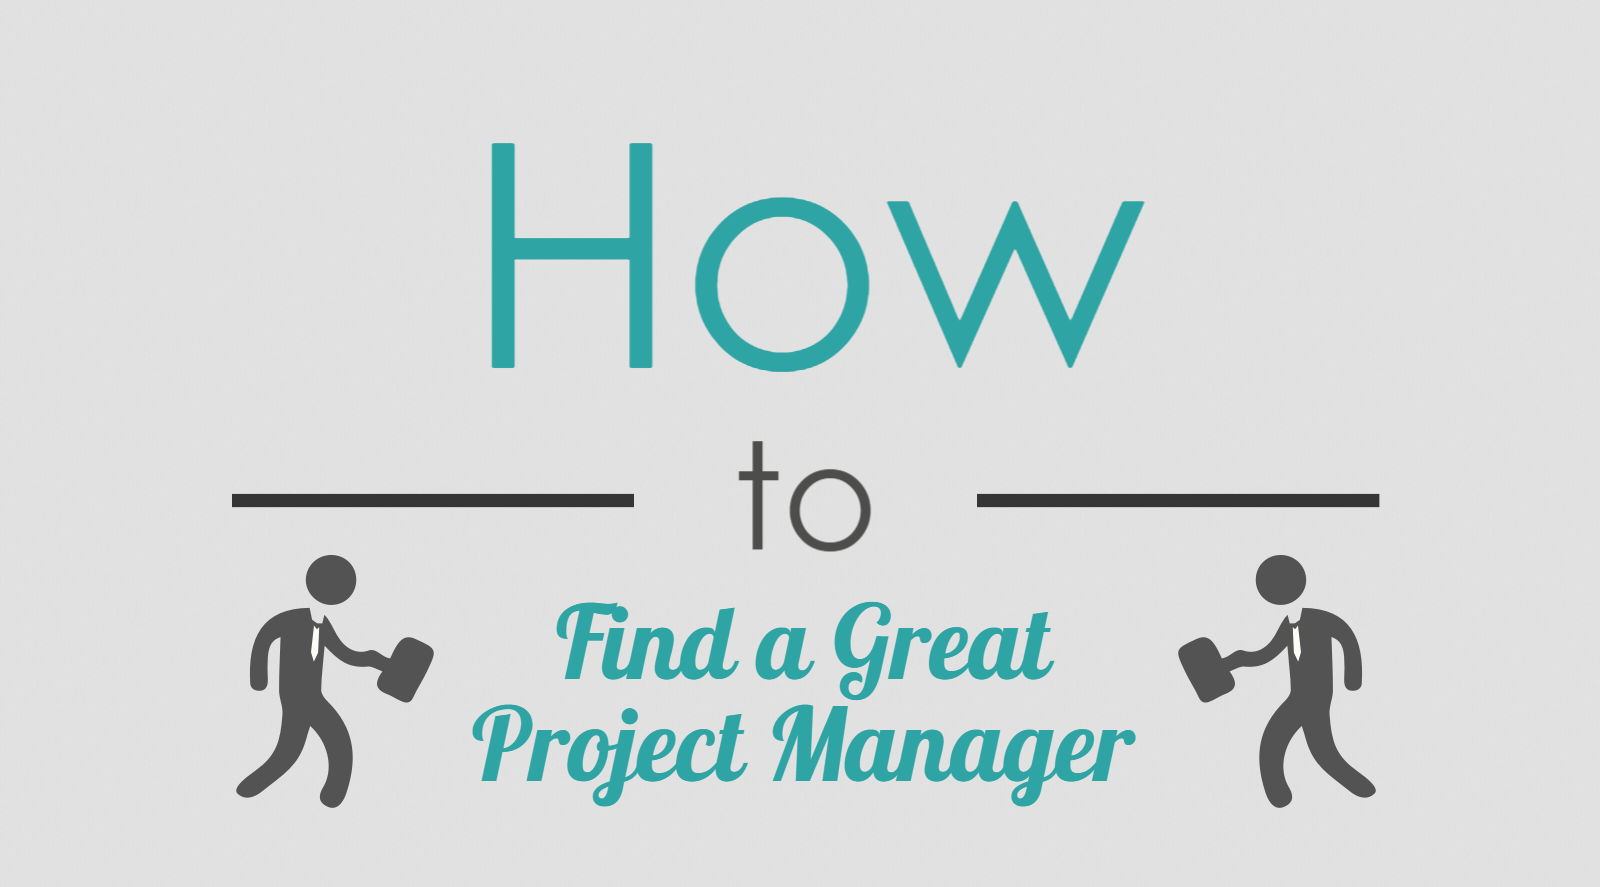 Infographic Summary for Recruiters in Search of a Project Manager